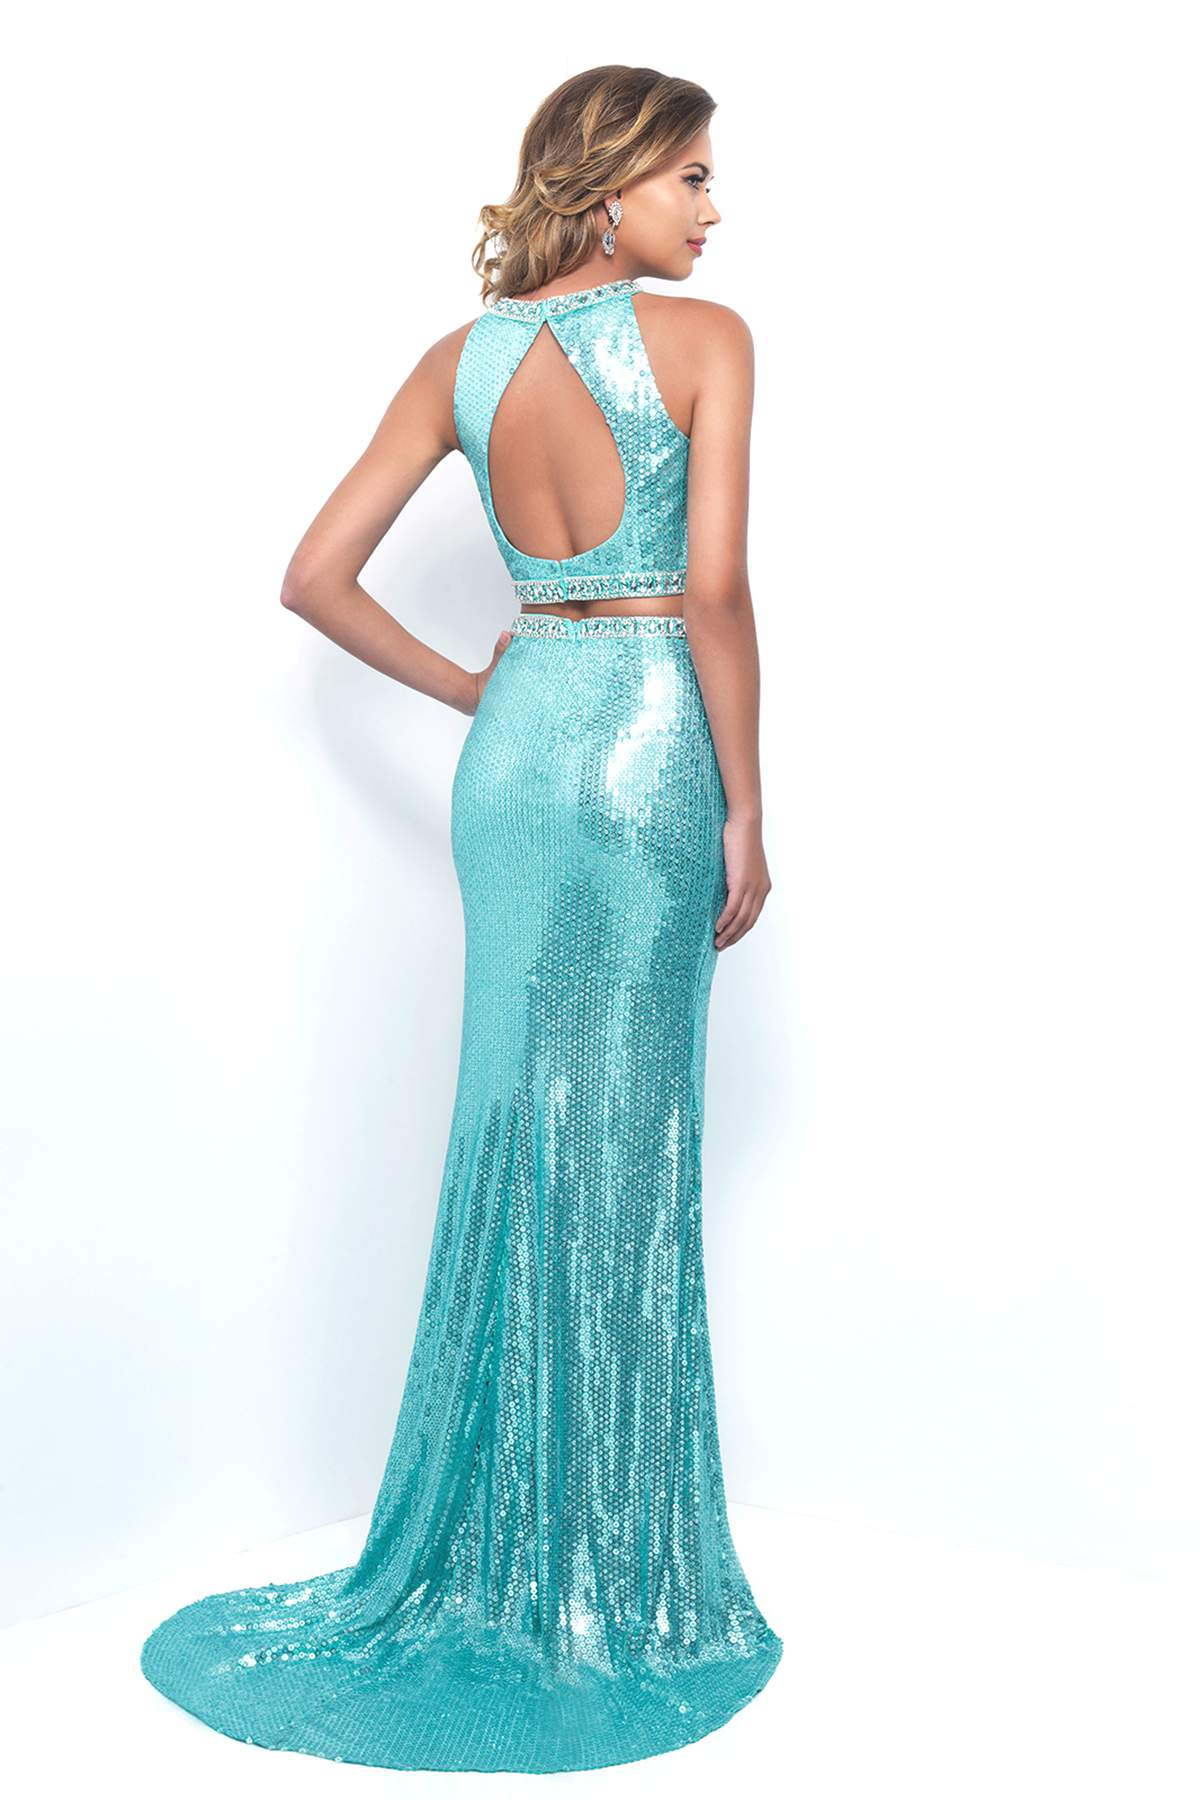 Style 11226 by Blush by Alexia - Find Your Dream Dress